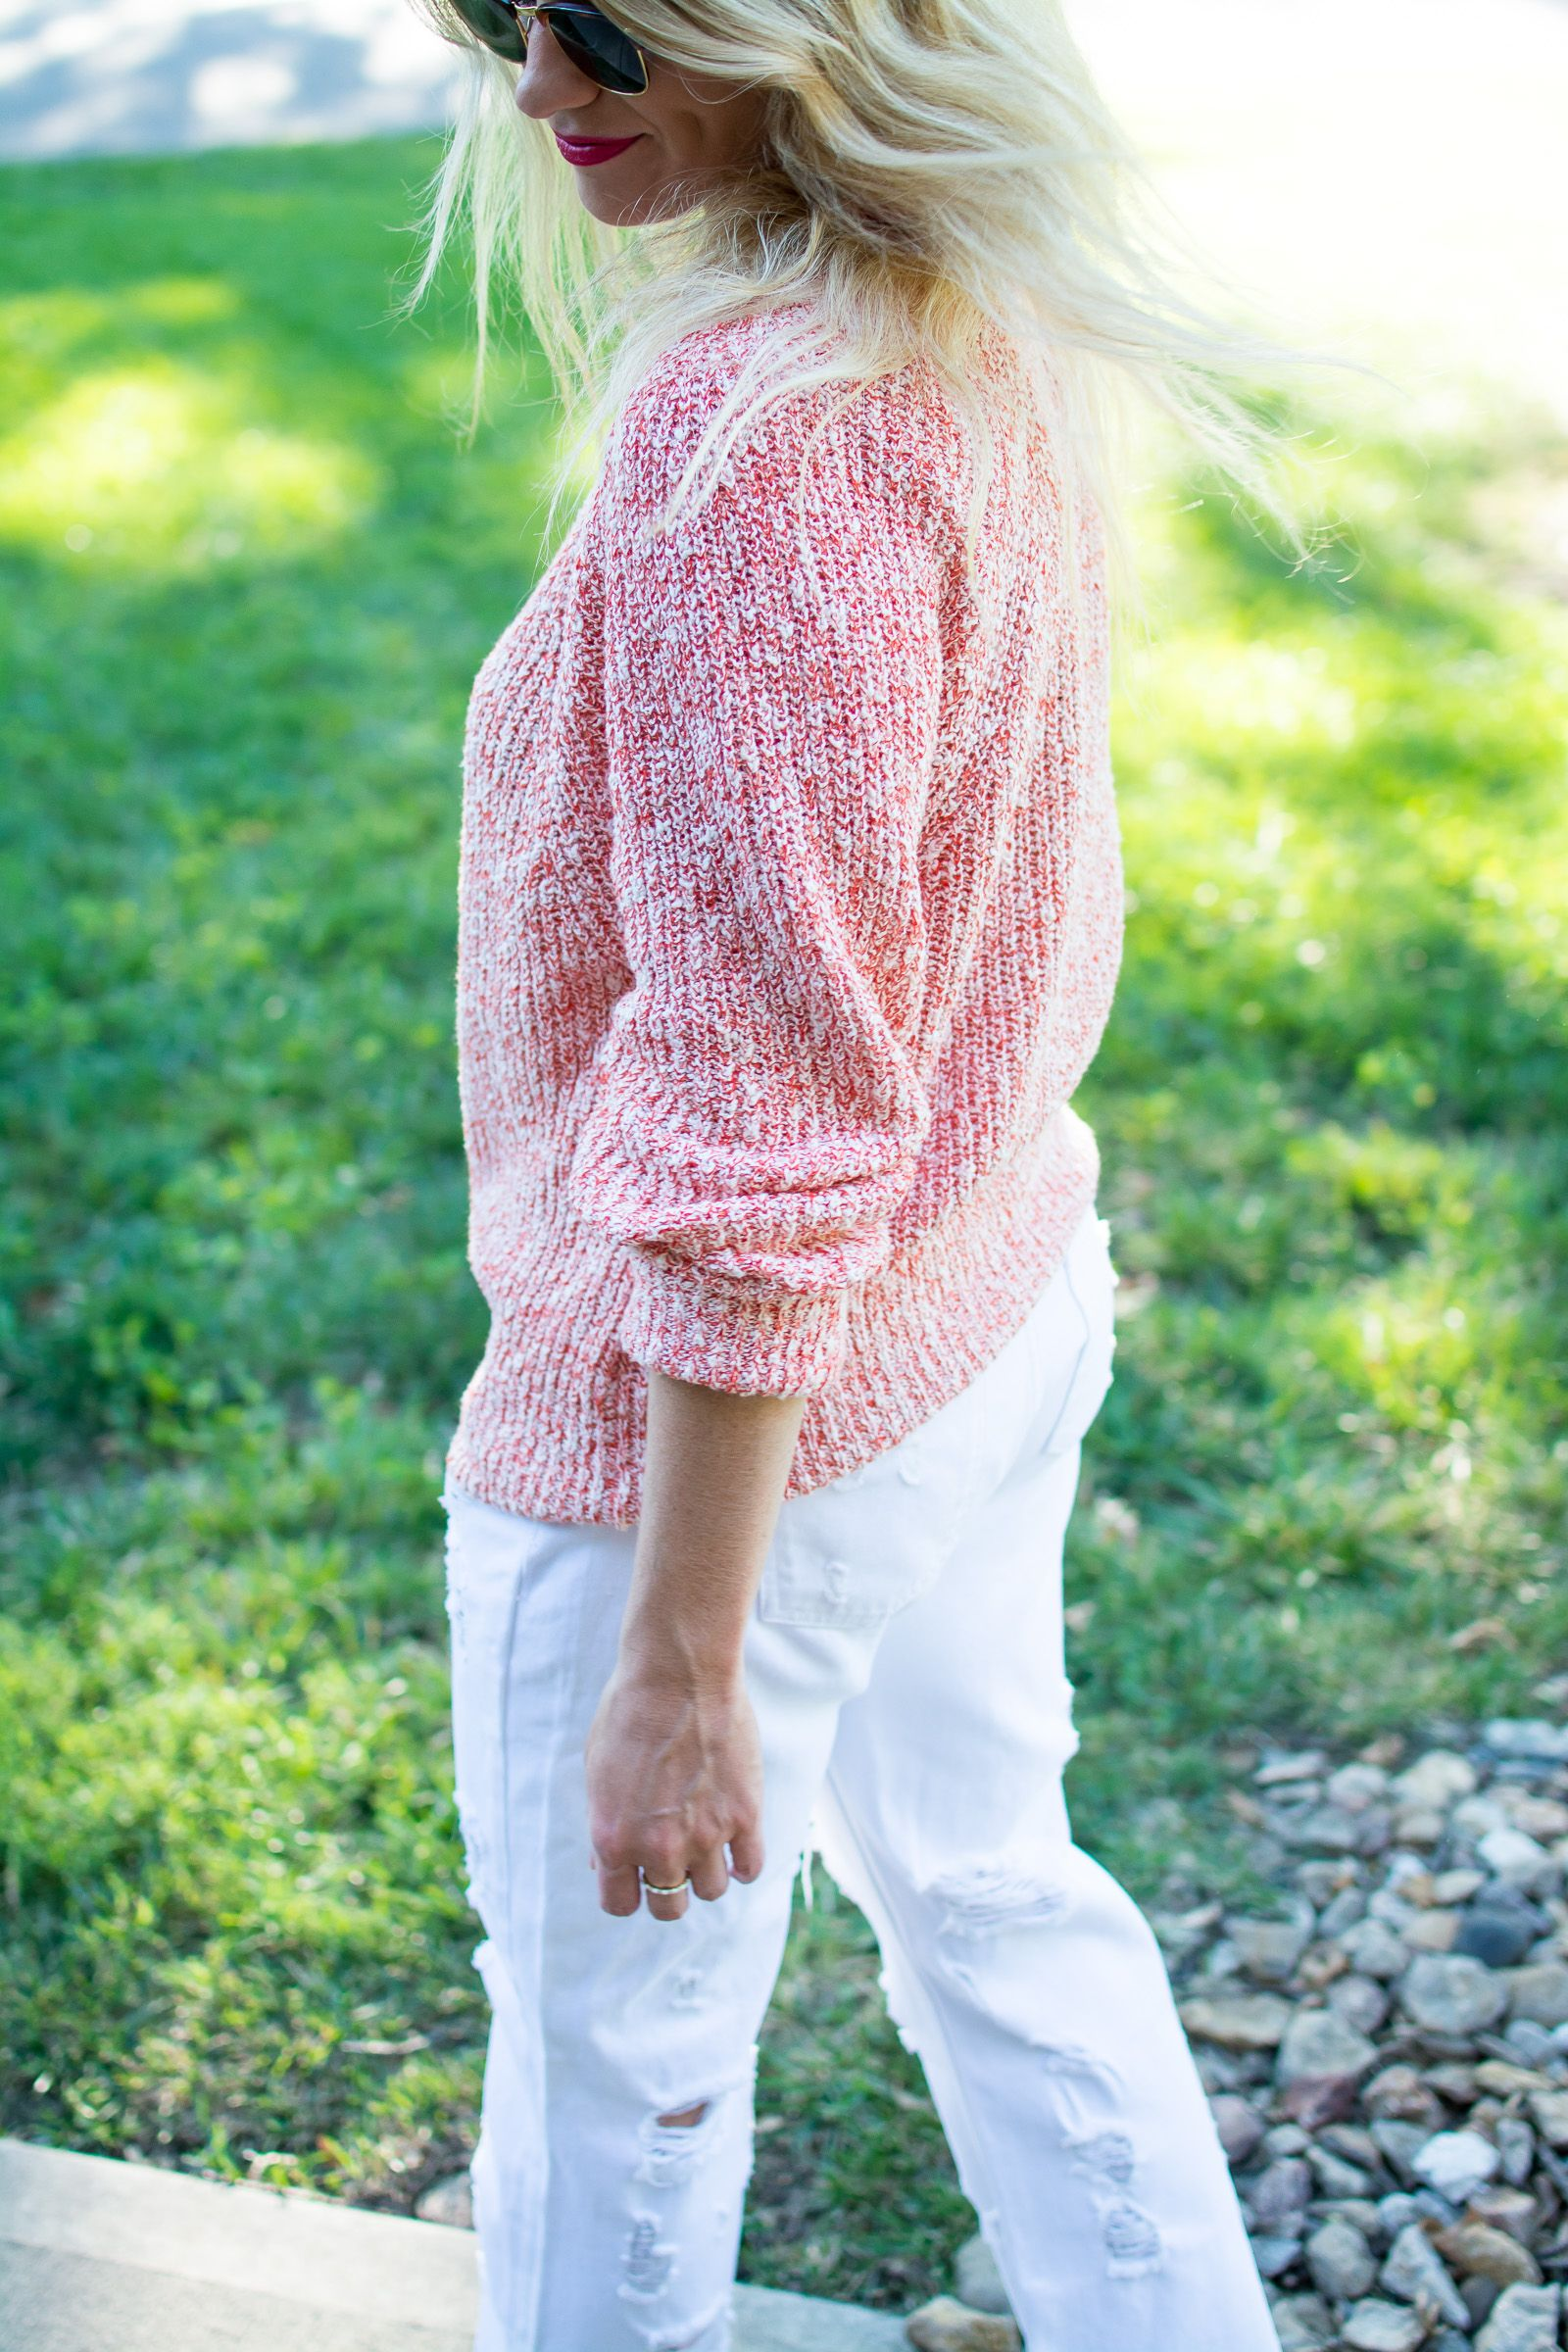 Summer Sweater with White Boyfriend Denim. | Ashley from Le Stylo ...